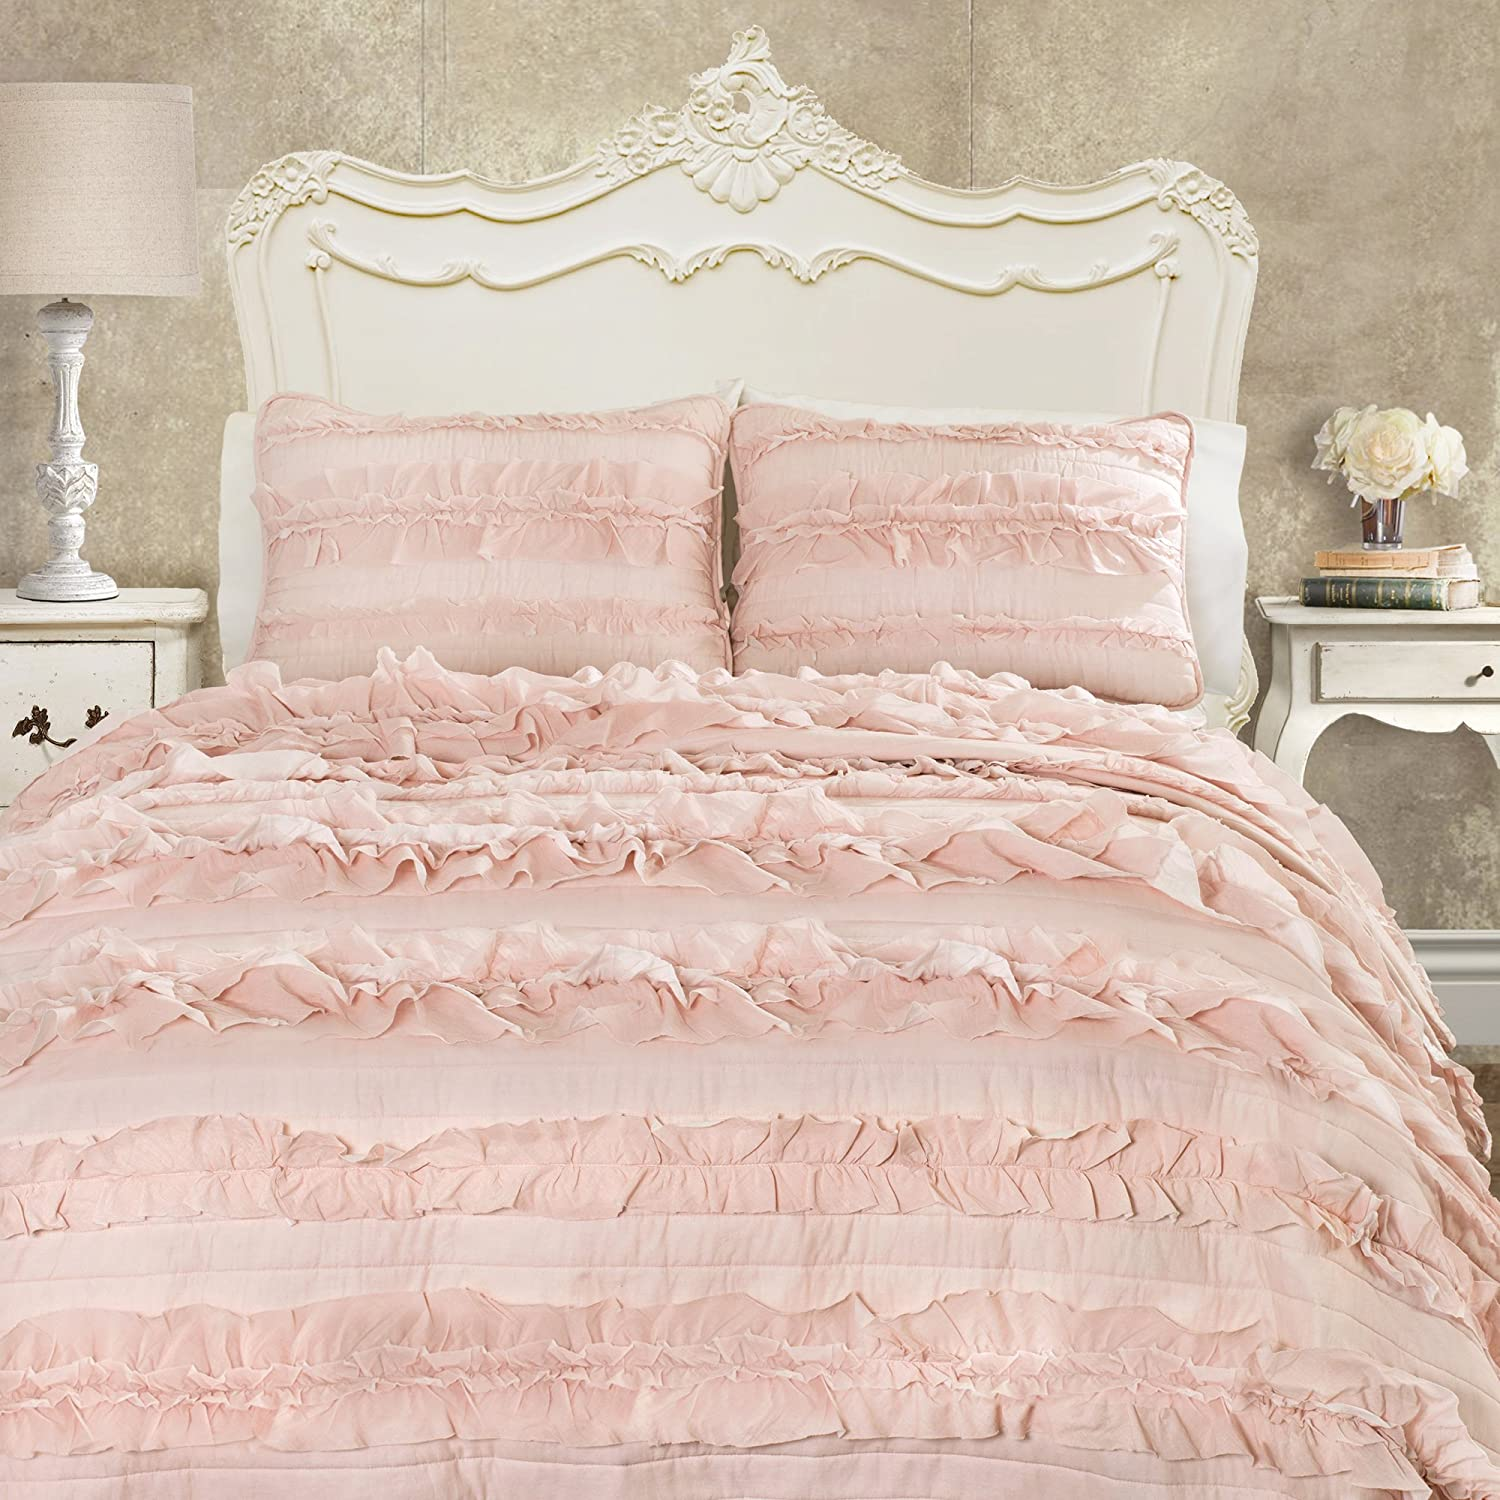 duvet blush cover sow societyofwanderers products anglers